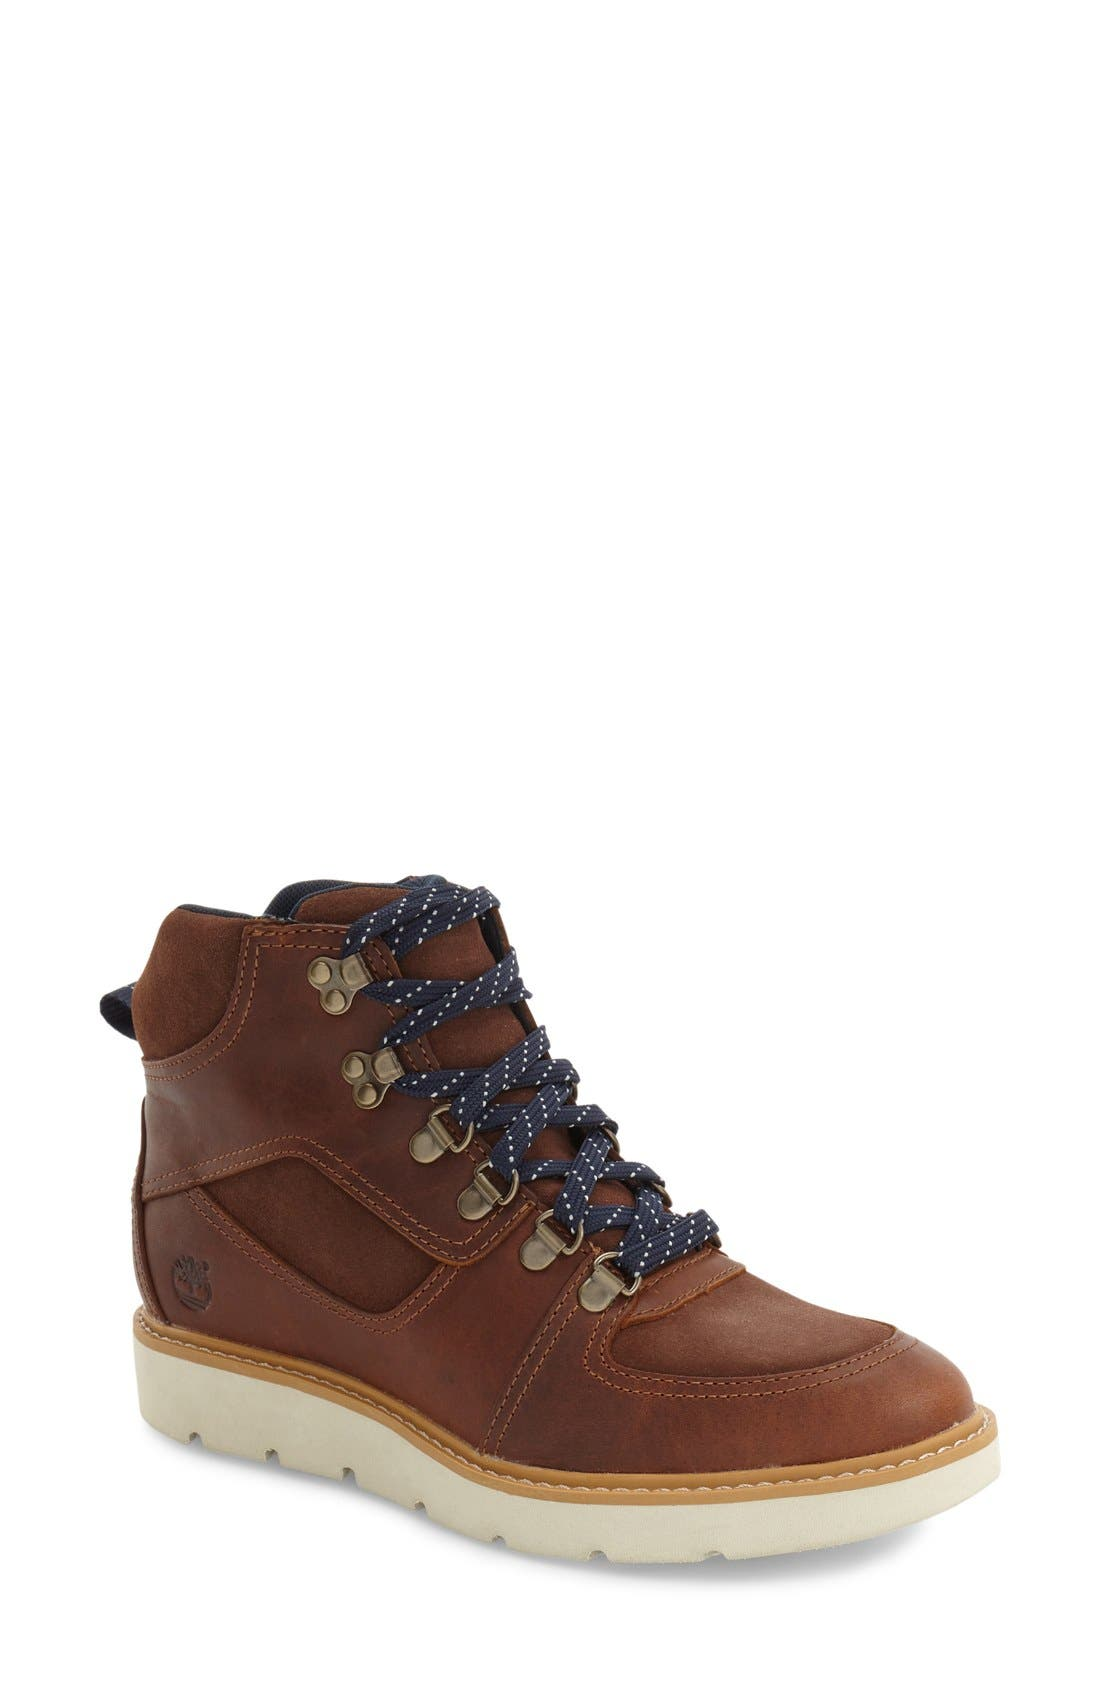 Alternate Image 1 Selected - Timberland 'Kenniston' Lace-Up Boot (Women)